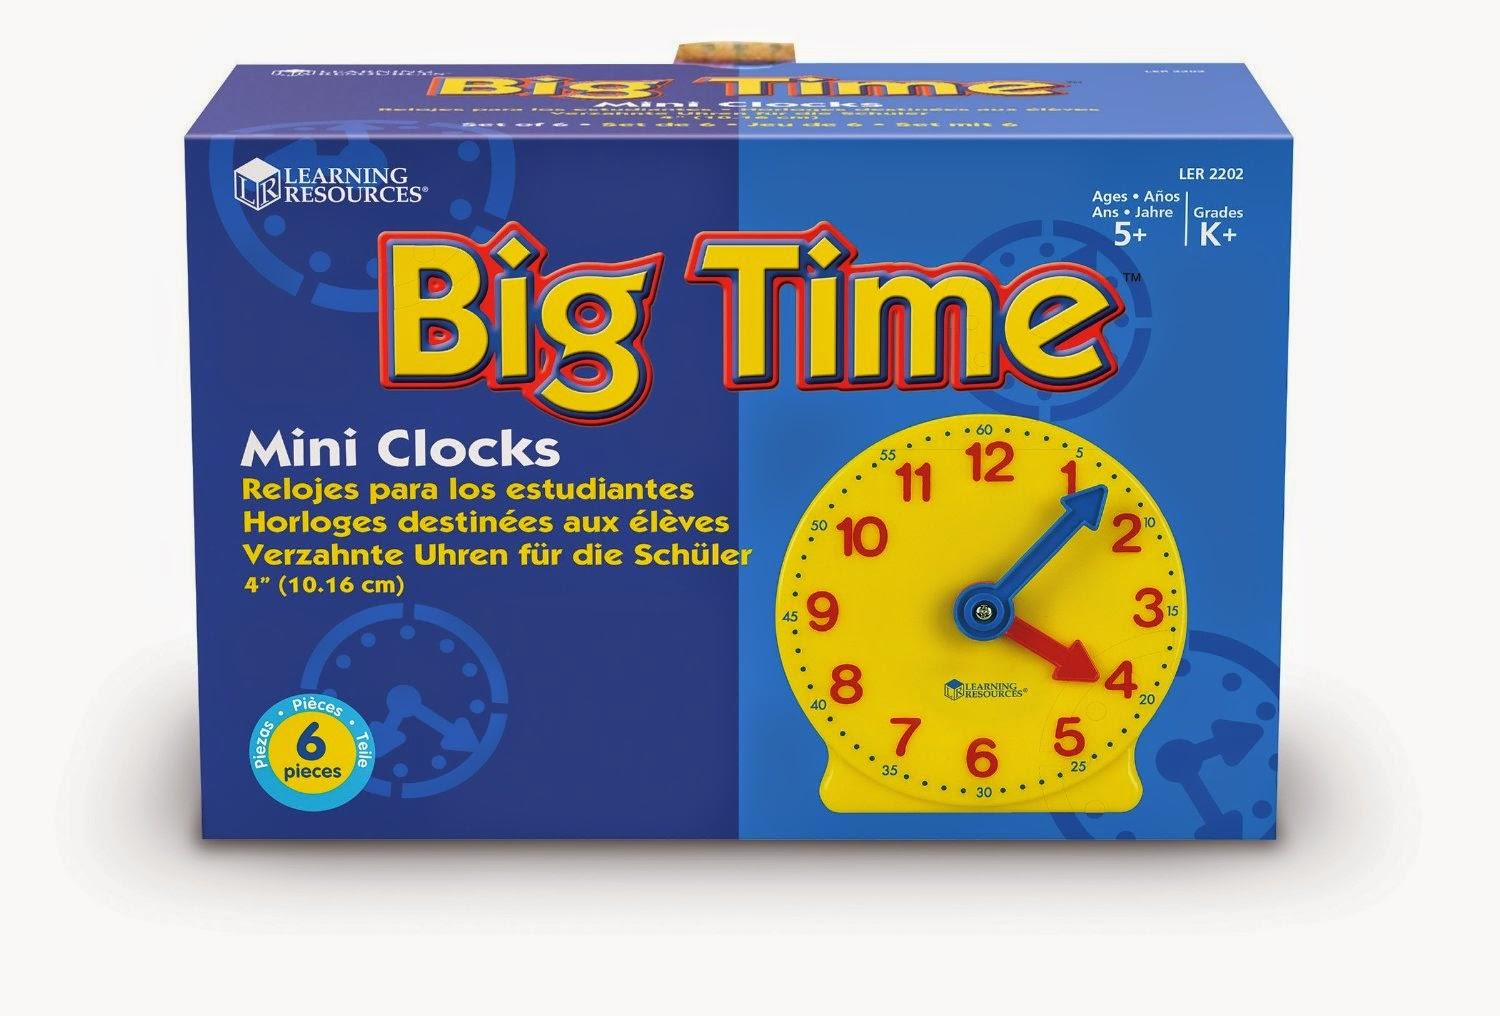 http://www.amazon.com/Learning-Resources-Gear-Clock-Inch/dp/B0035OL4YE/ref=sr_1_3?ie=UTF8&qid=1426439043&sr=8-3&keywords=classroom+clocks